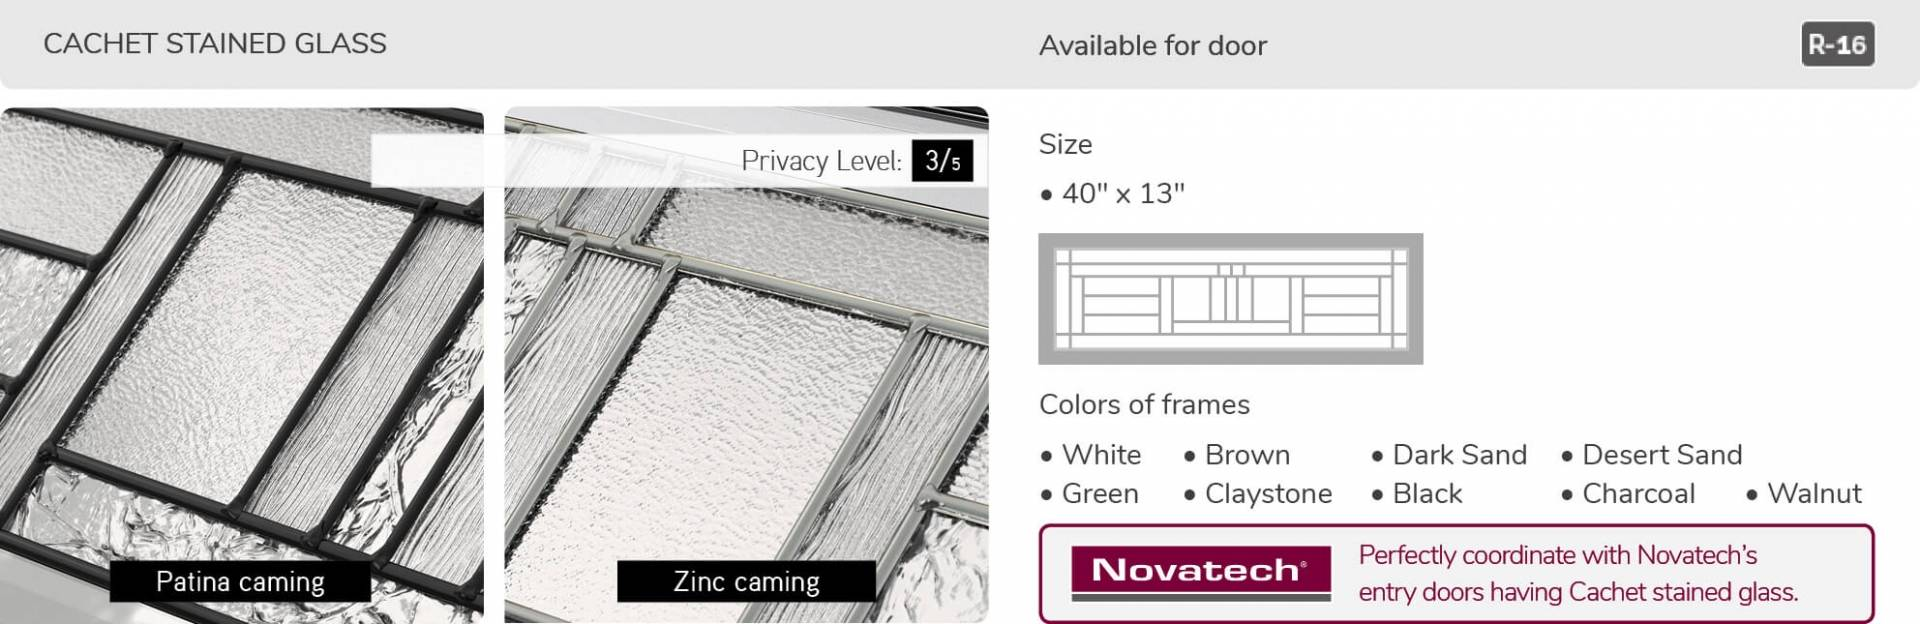 Cachet Stained glass, 40' x 13', available for door R-16